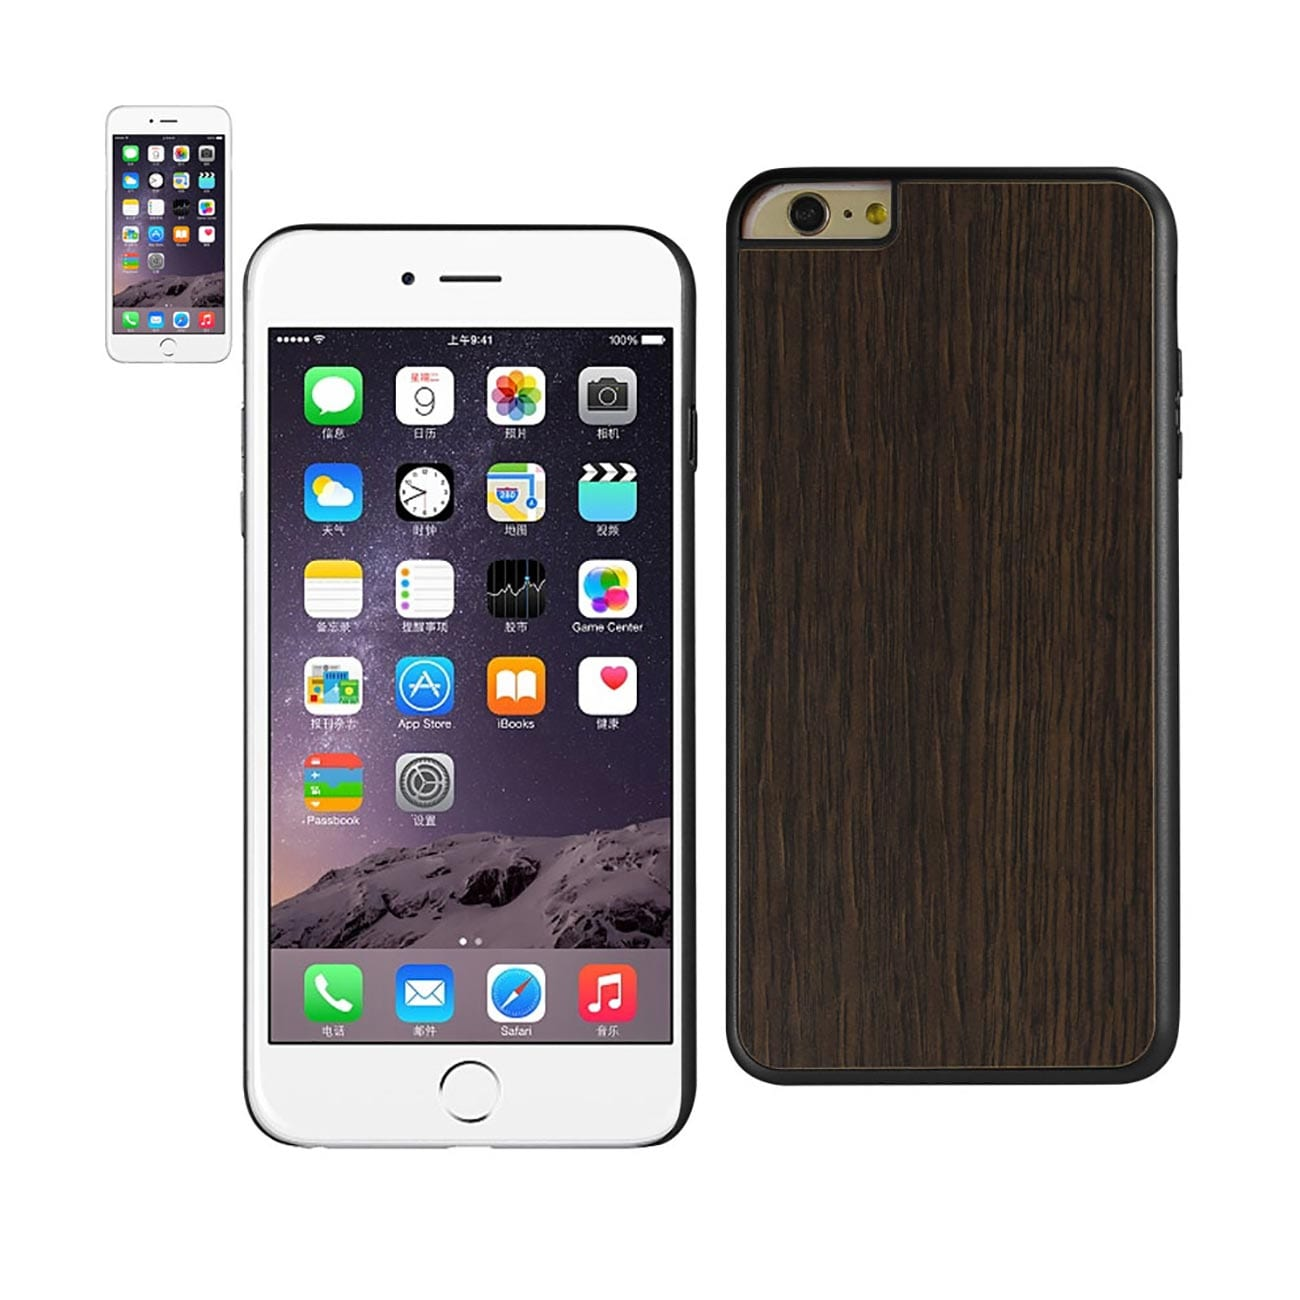 ISTIK IPHONE 6 PLUS REAL WOOD SLIM SNAP ON CASE IN BLACK